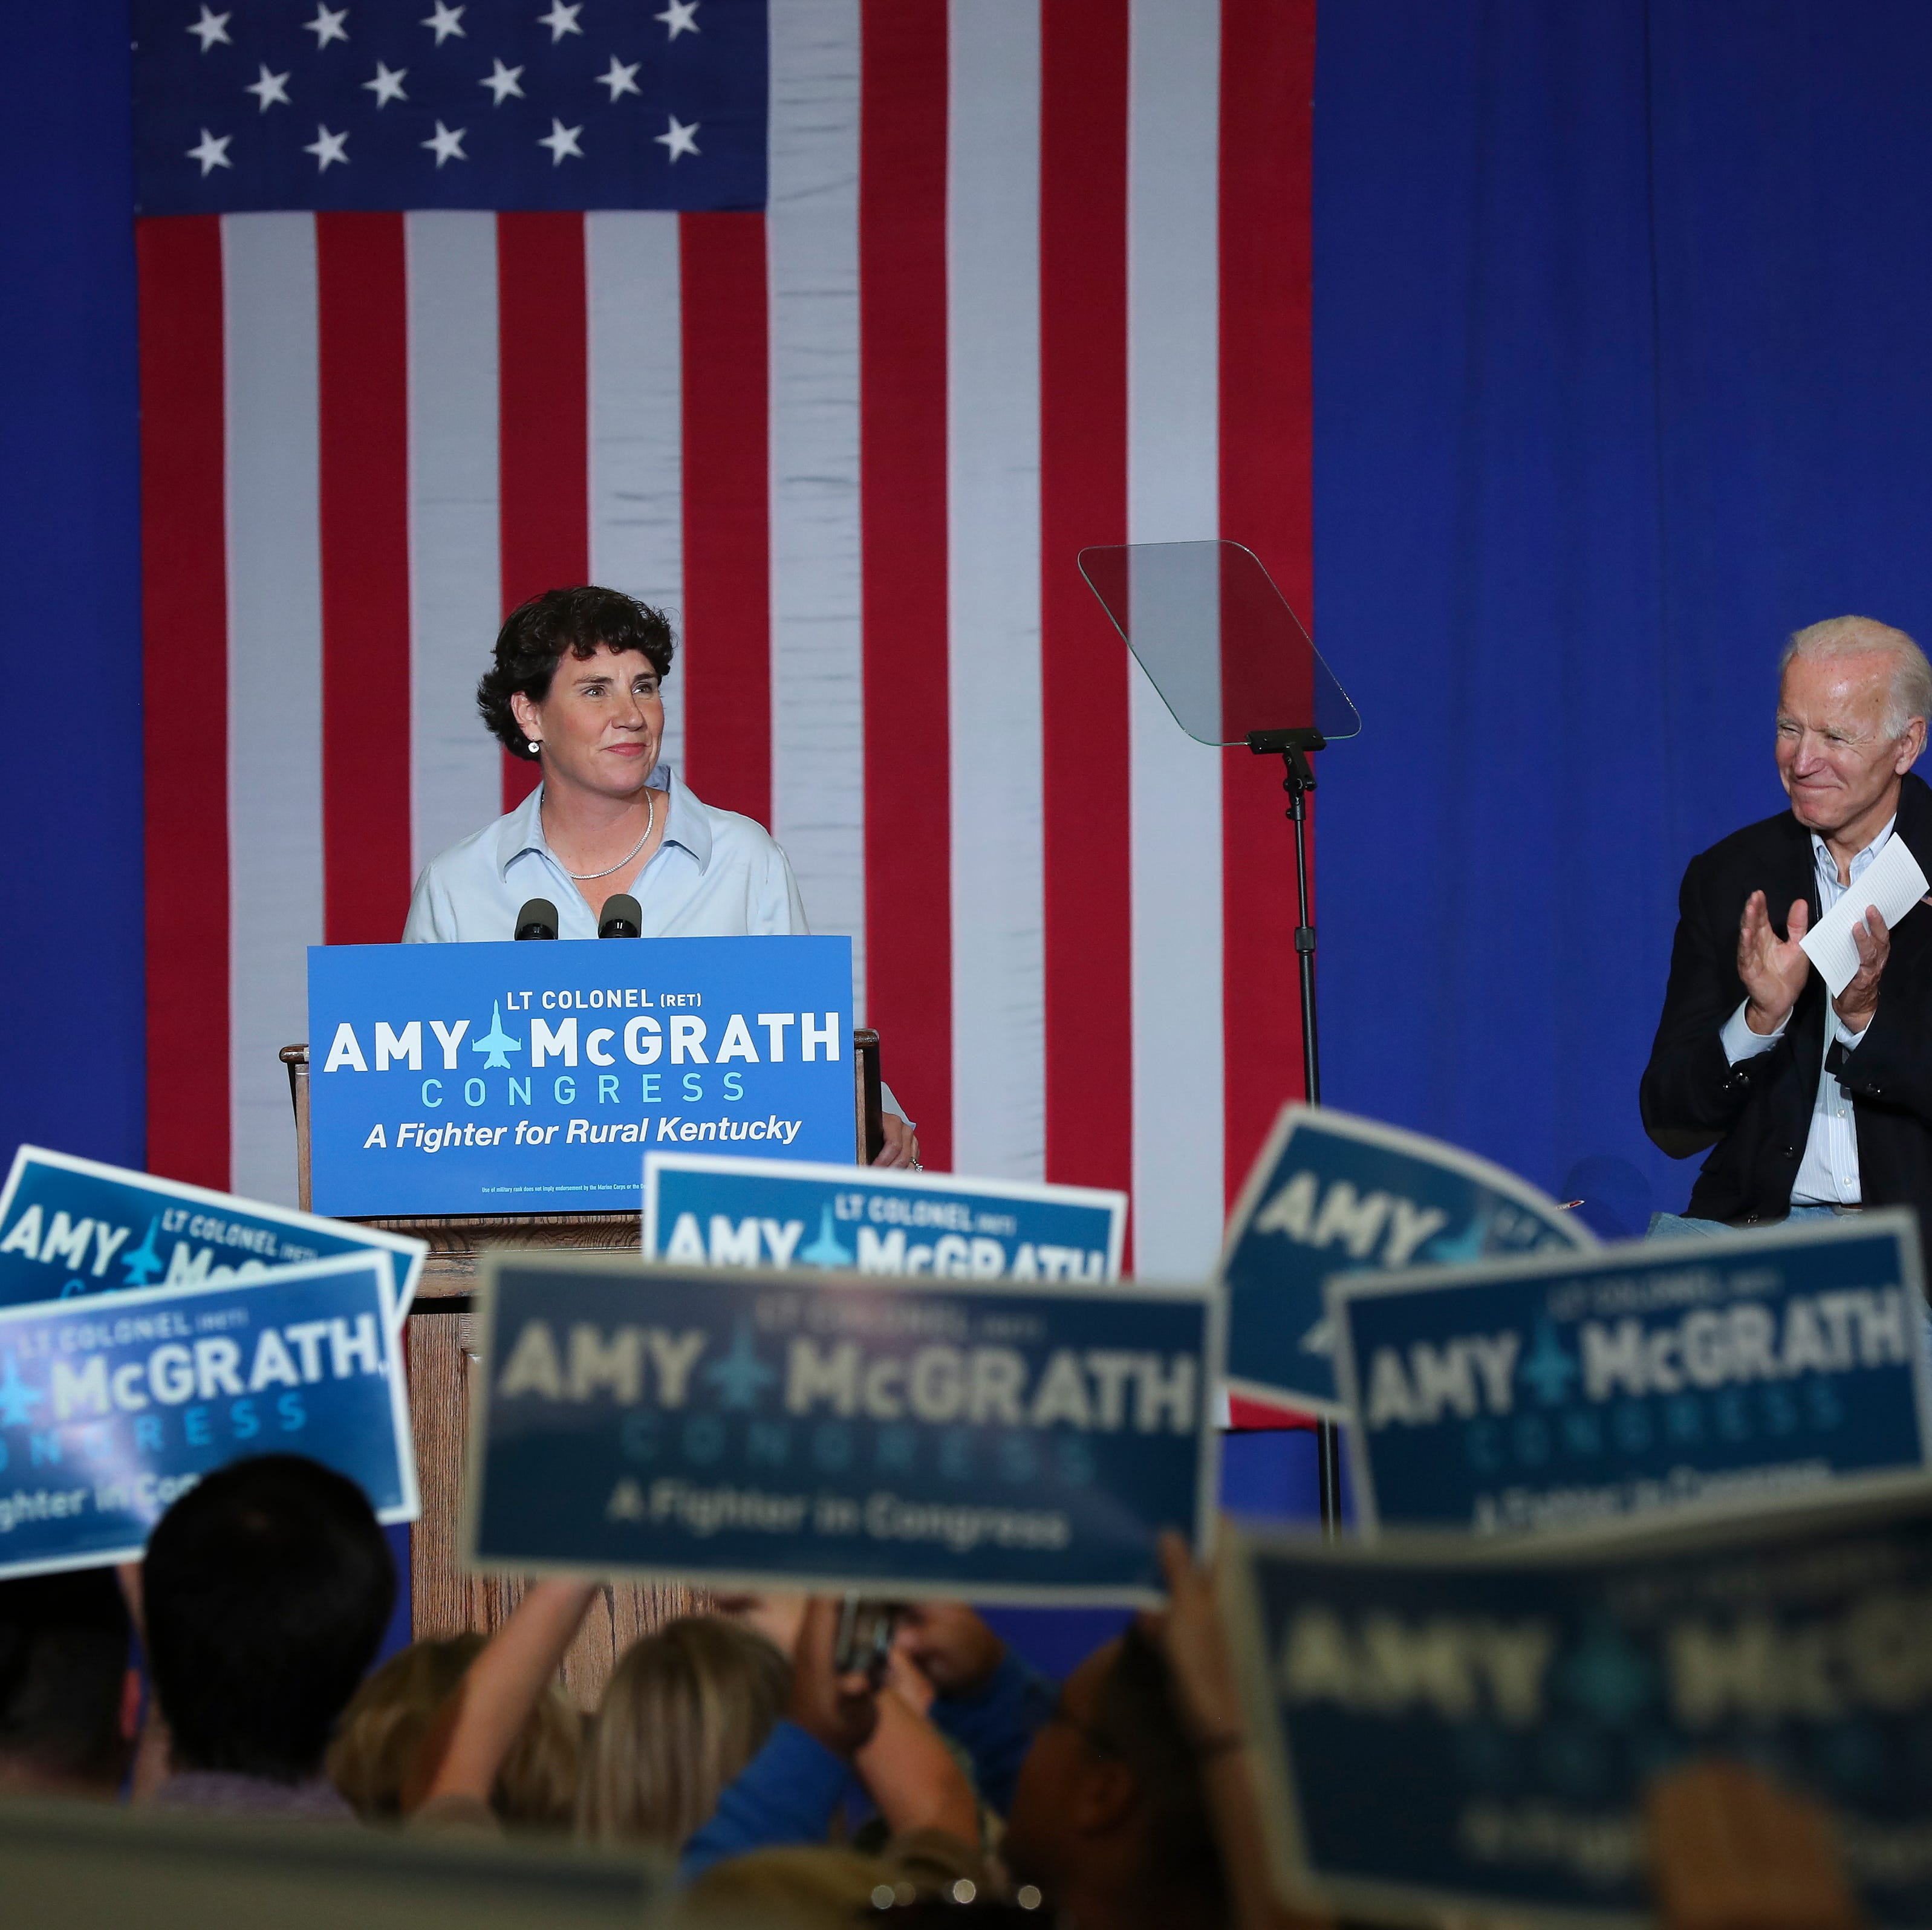 Biden energizes McGrath supporters with calls to 'take back' the House